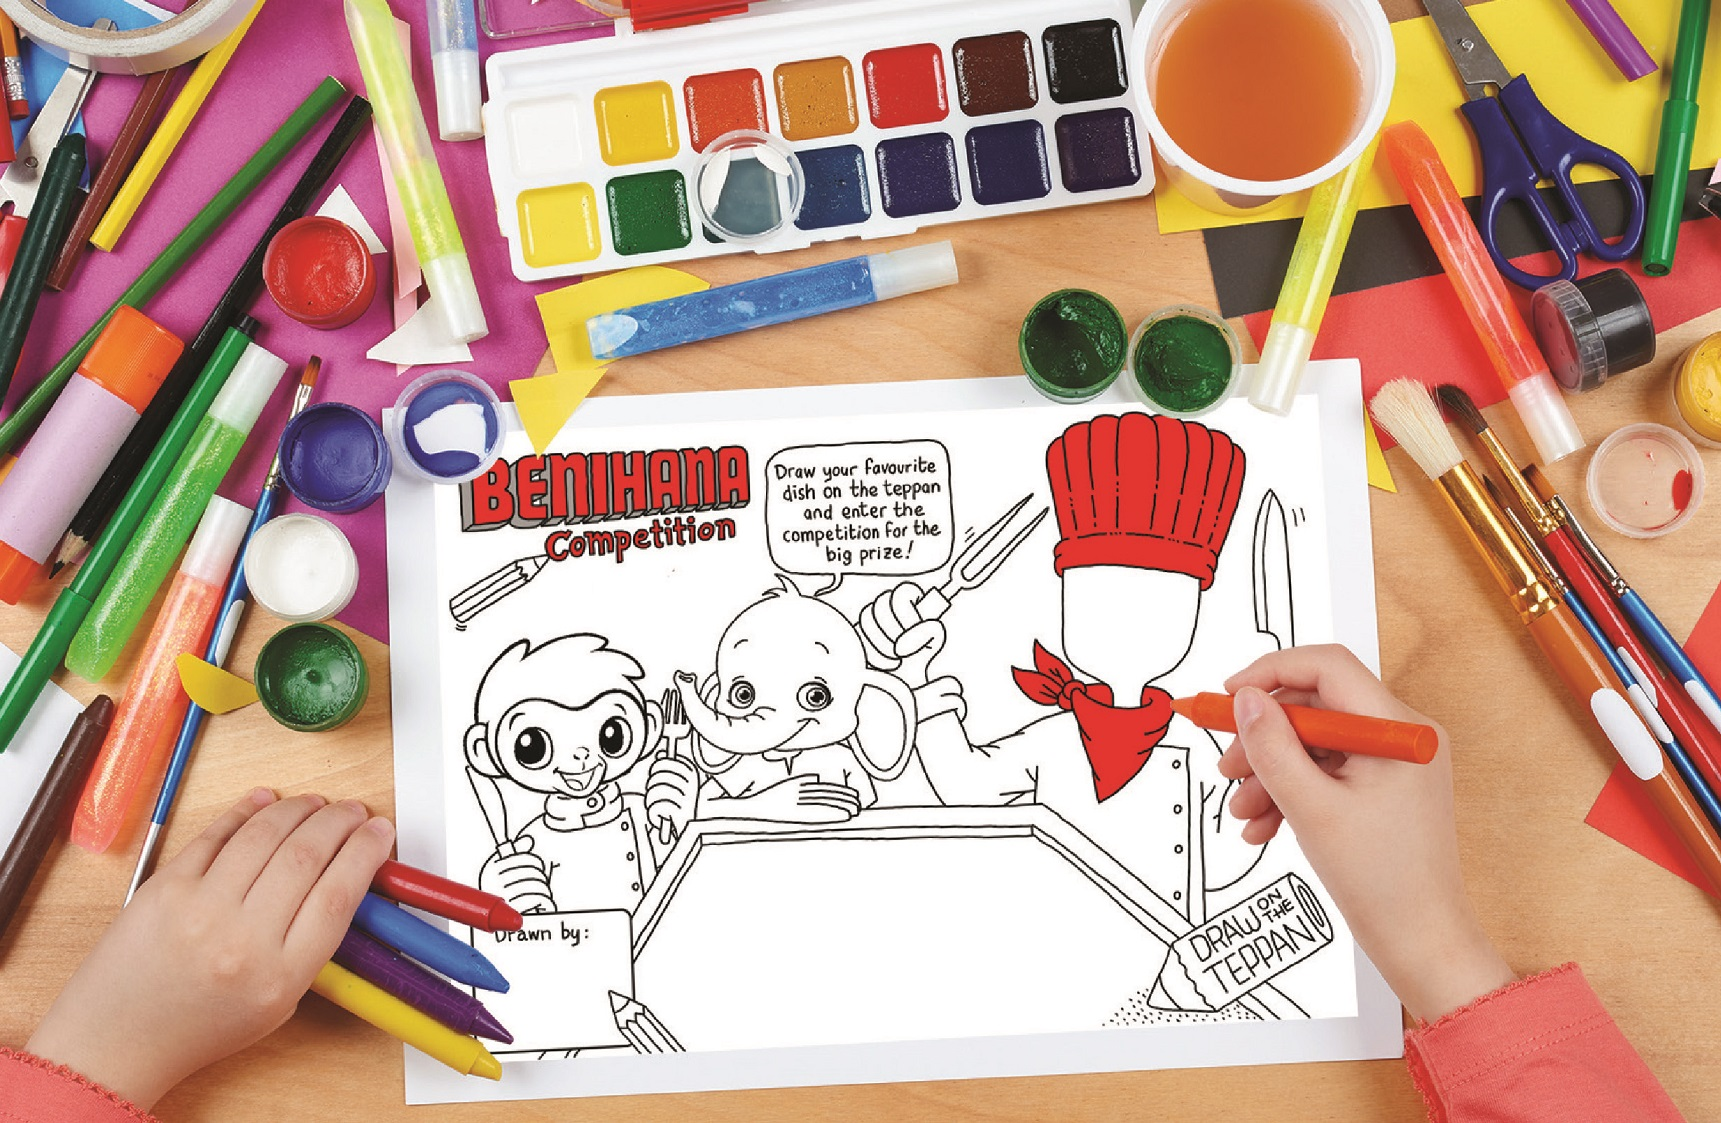 VATR Benihana drawing competition Flyer A4 (Verion all)